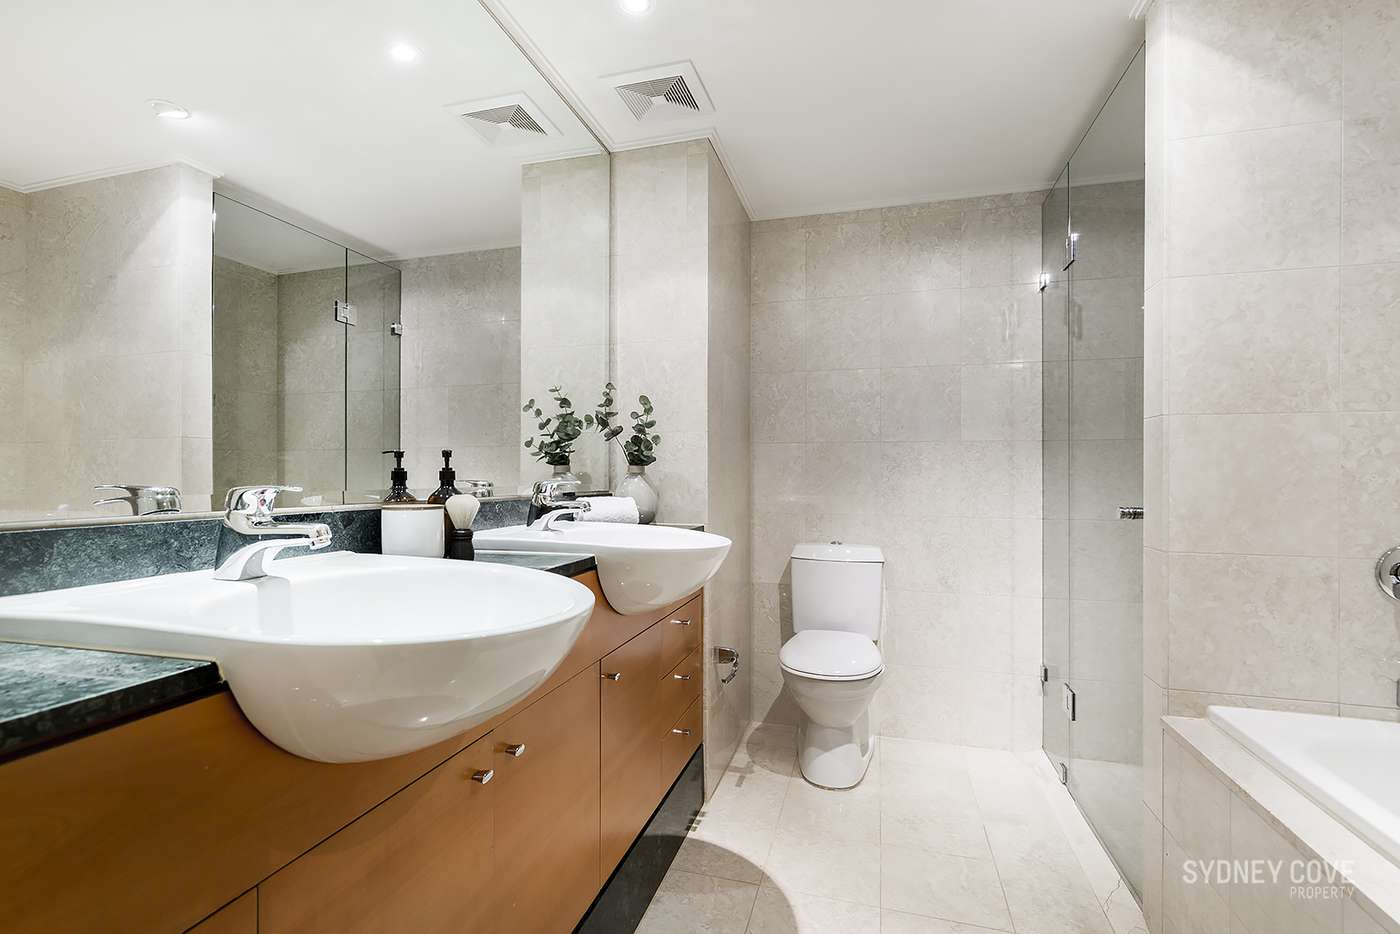 Sixth view of Homely apartment listing, 3104/68 Market Street, Sydney NSW 2000